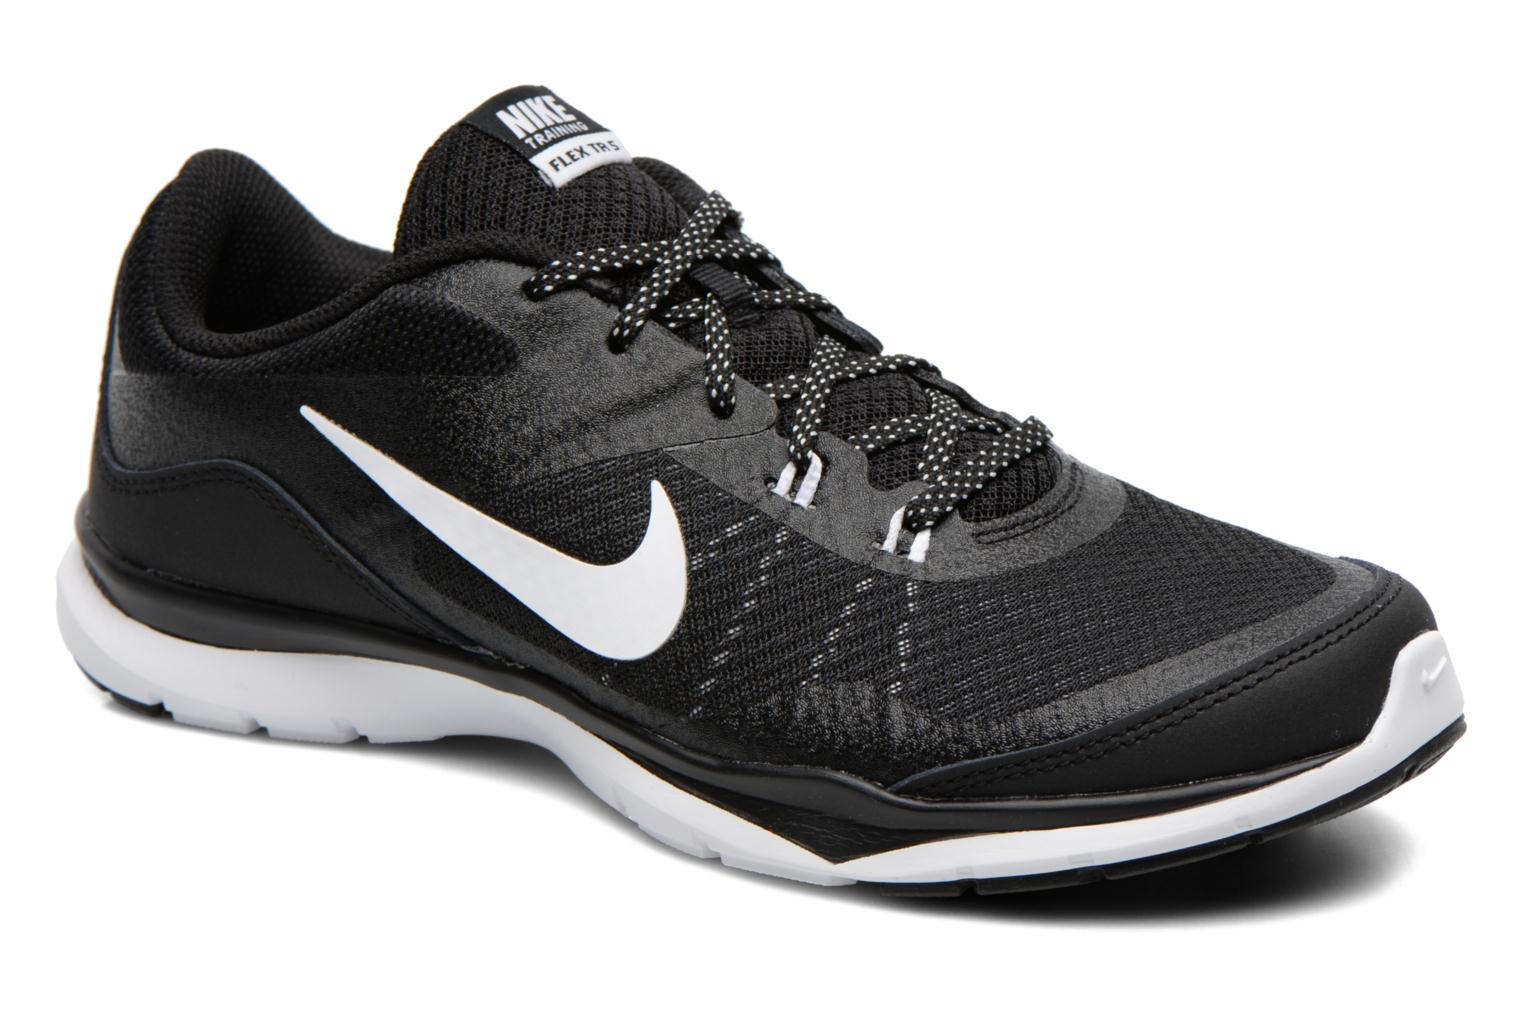 Wmns Nike Flex Trainer 5 Black/white-anthracite